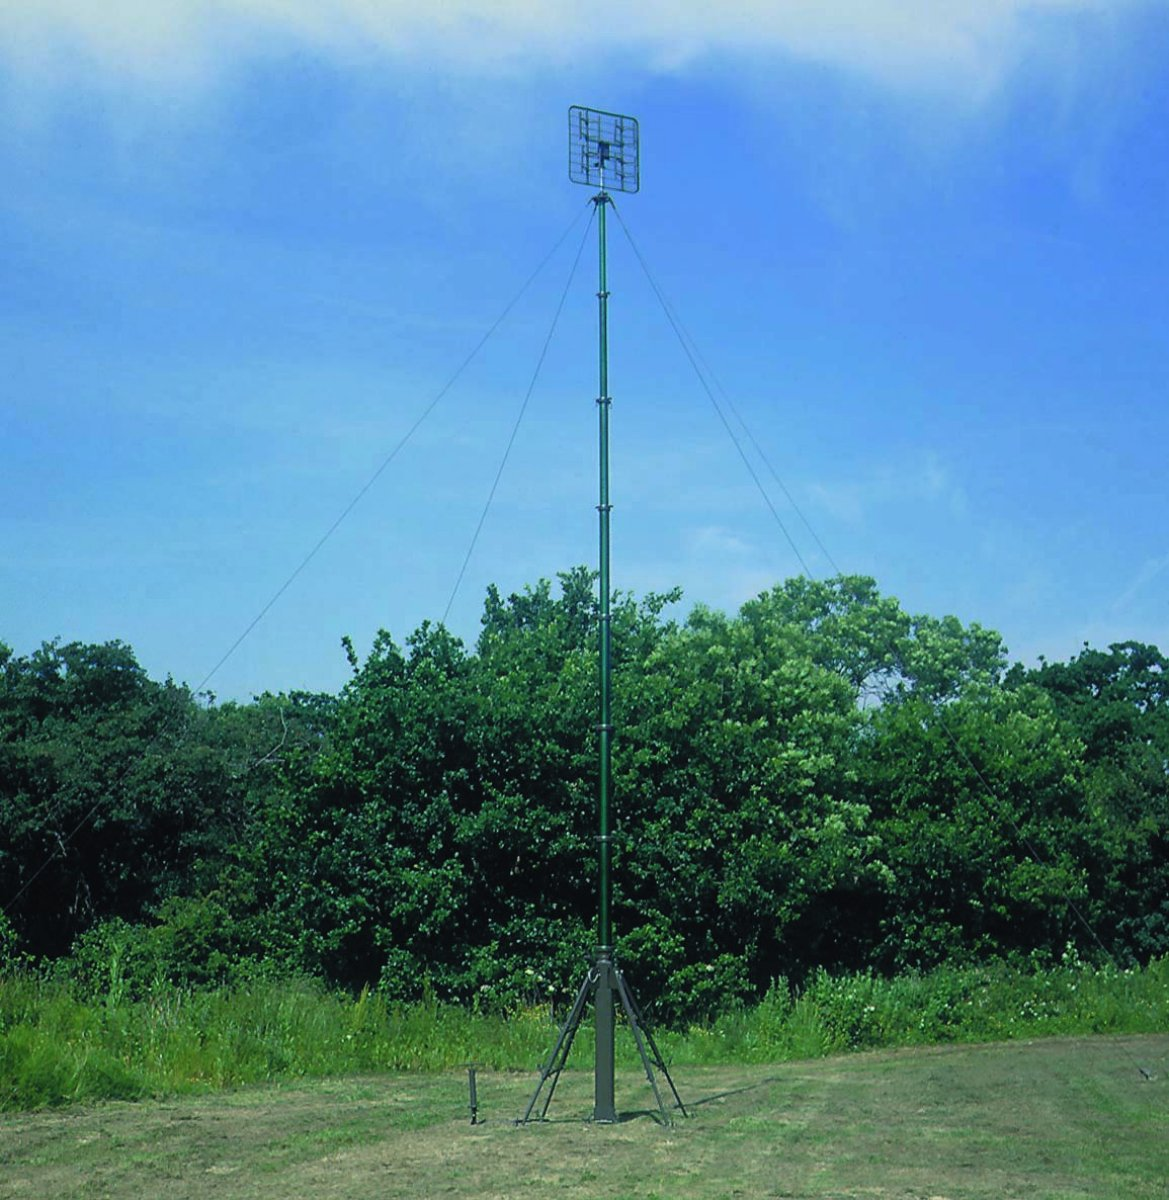 SCAM mast in the field. CLARK MASTS STSTEMS LIMITED